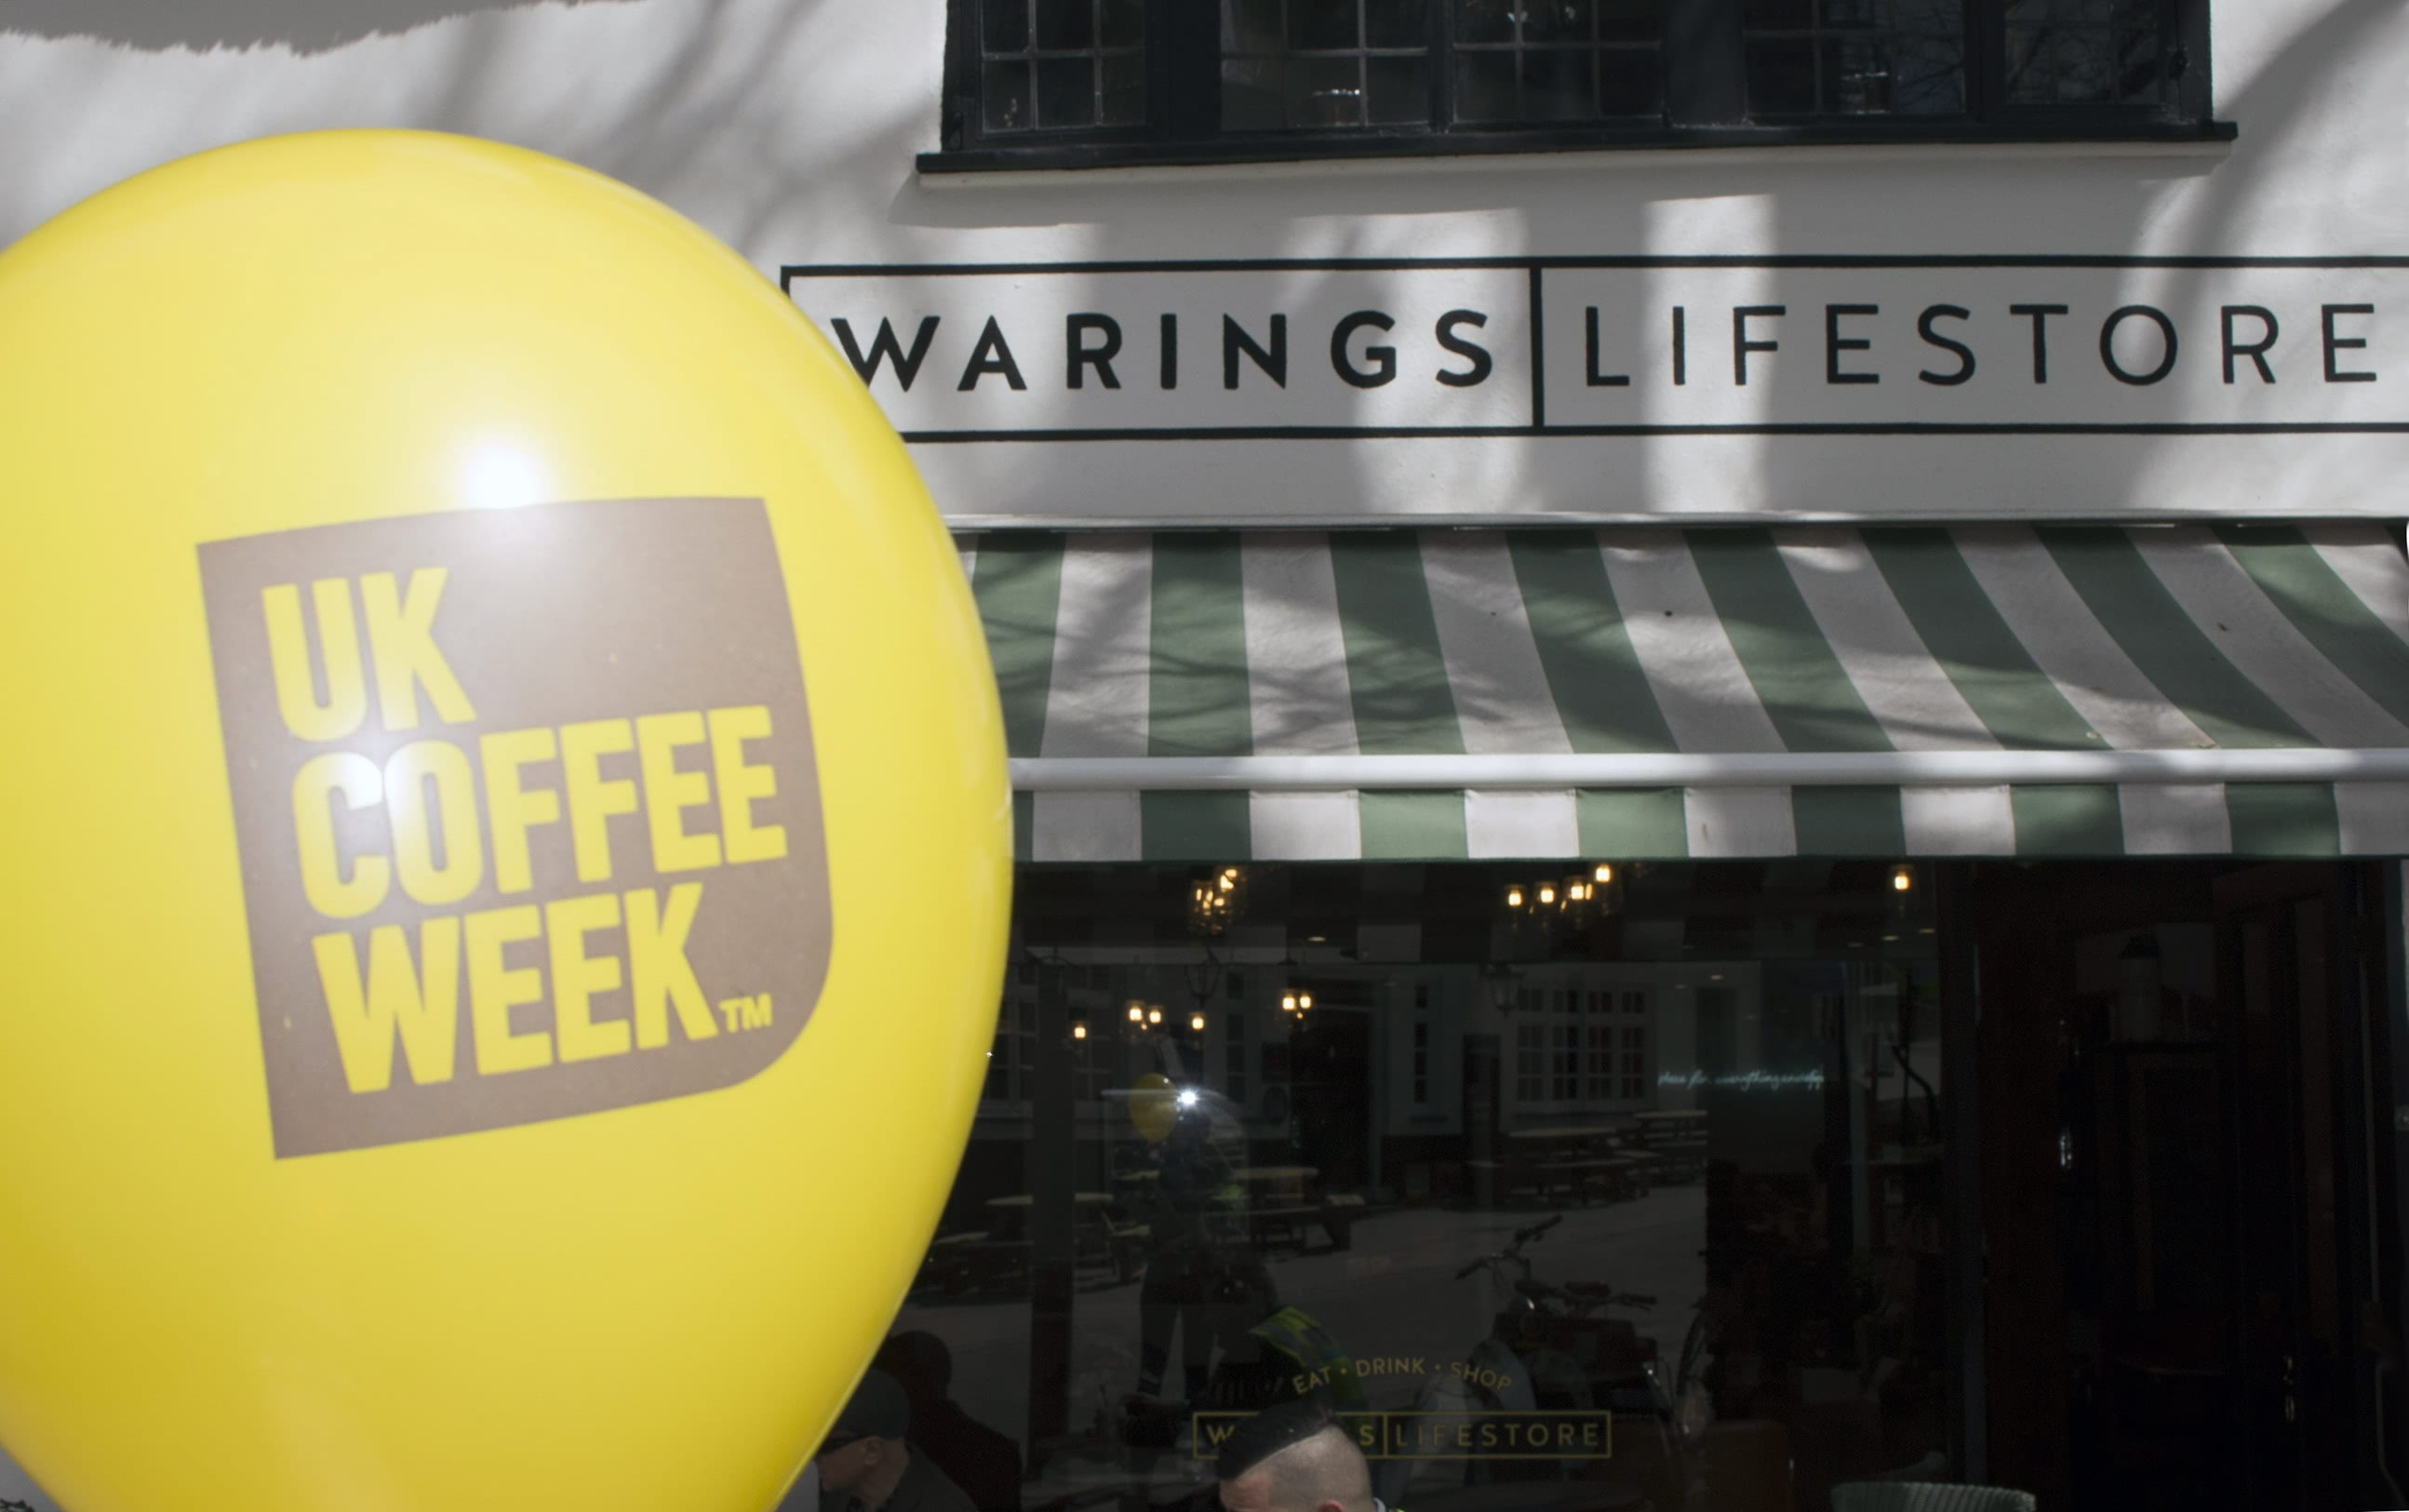 uk coffee week, warings cafe, norwich